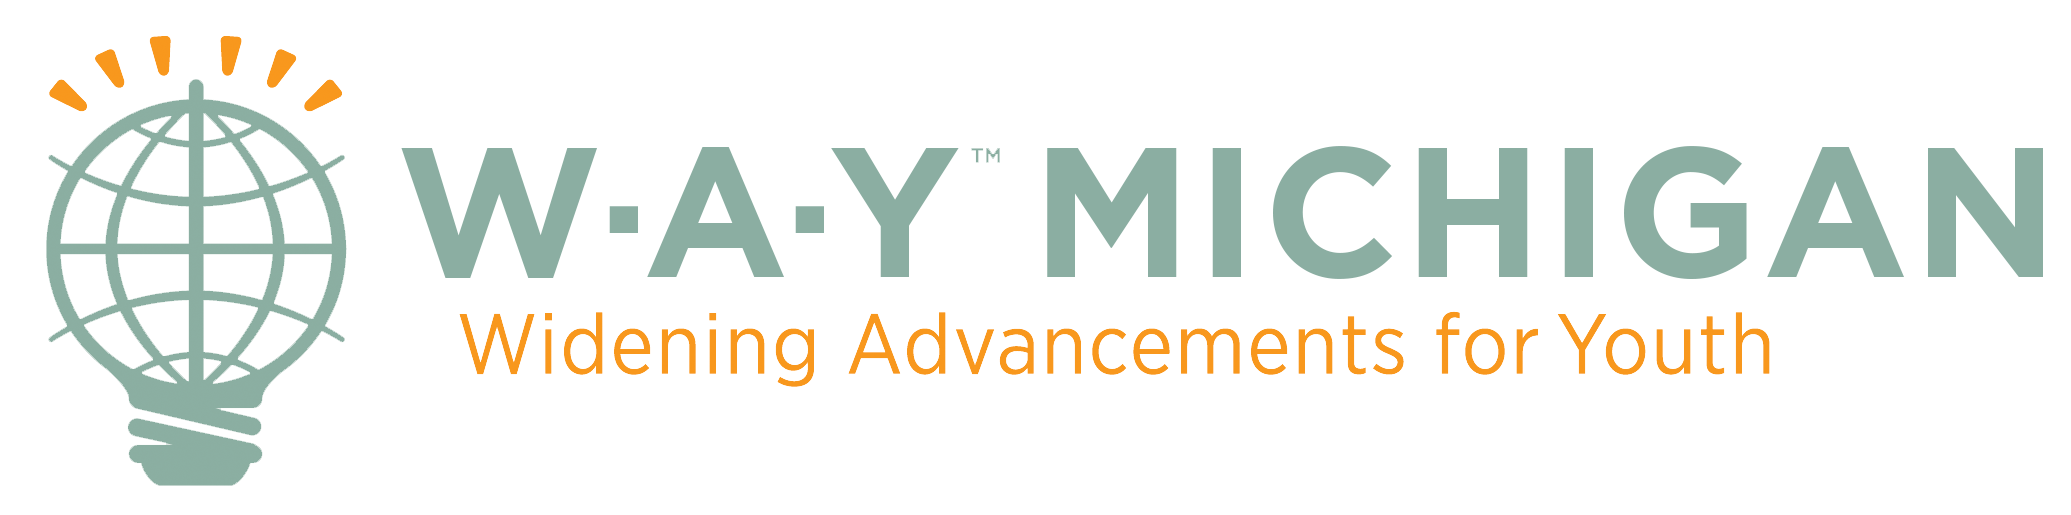 Enroll way michigan way michigan widening advancements for youth aiddatafo Image collections